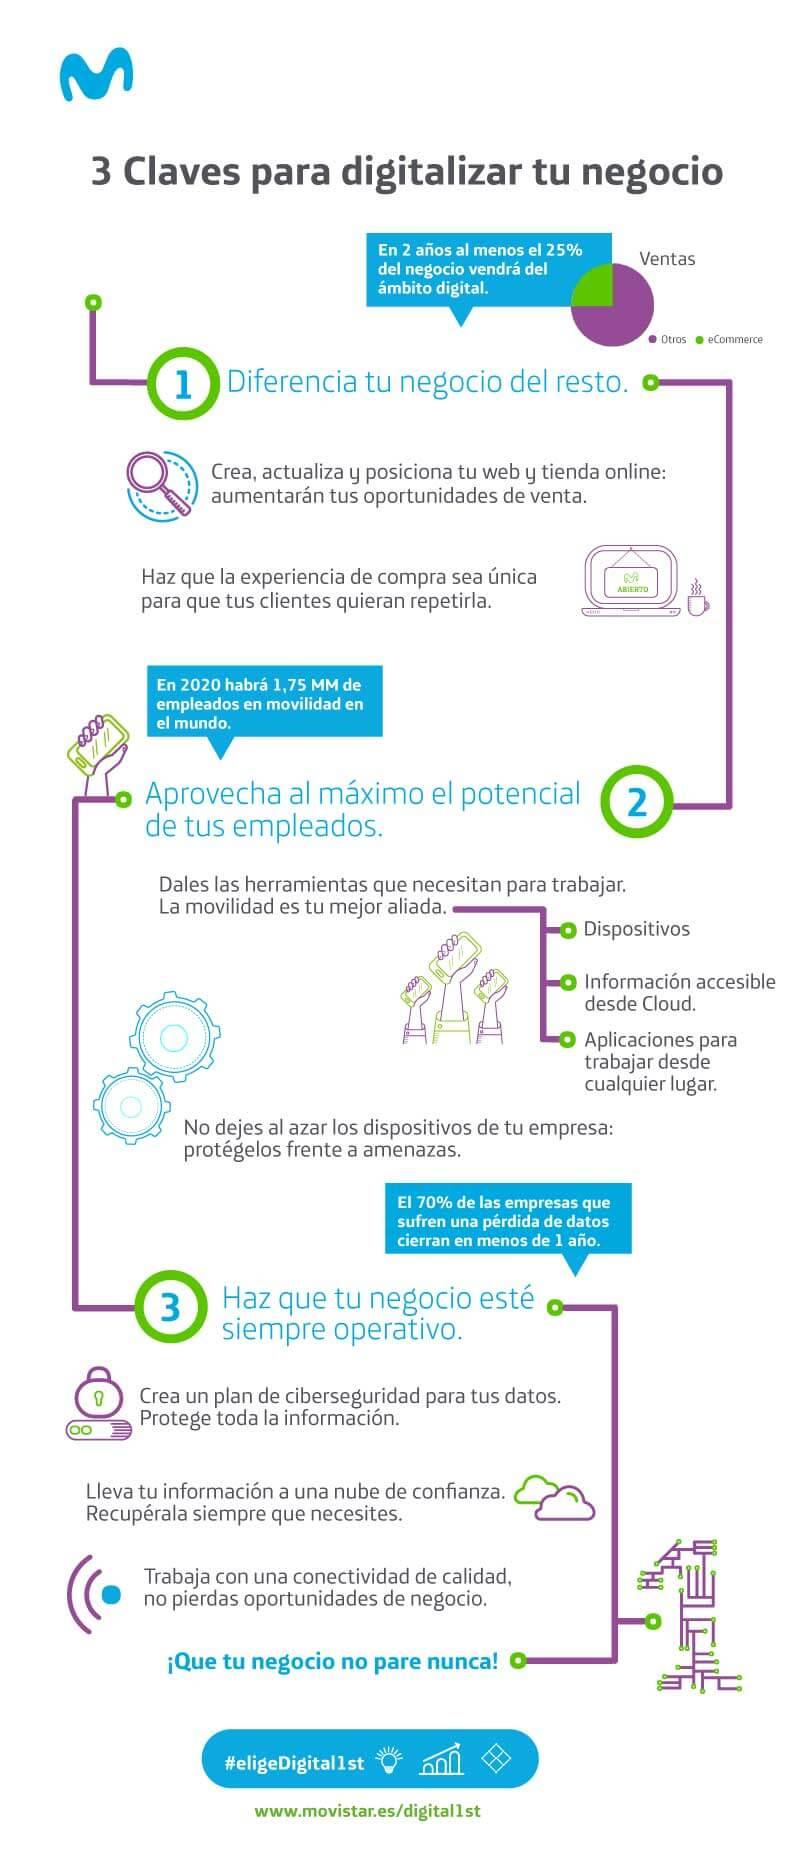 3 claves para digitalizar tu negocio